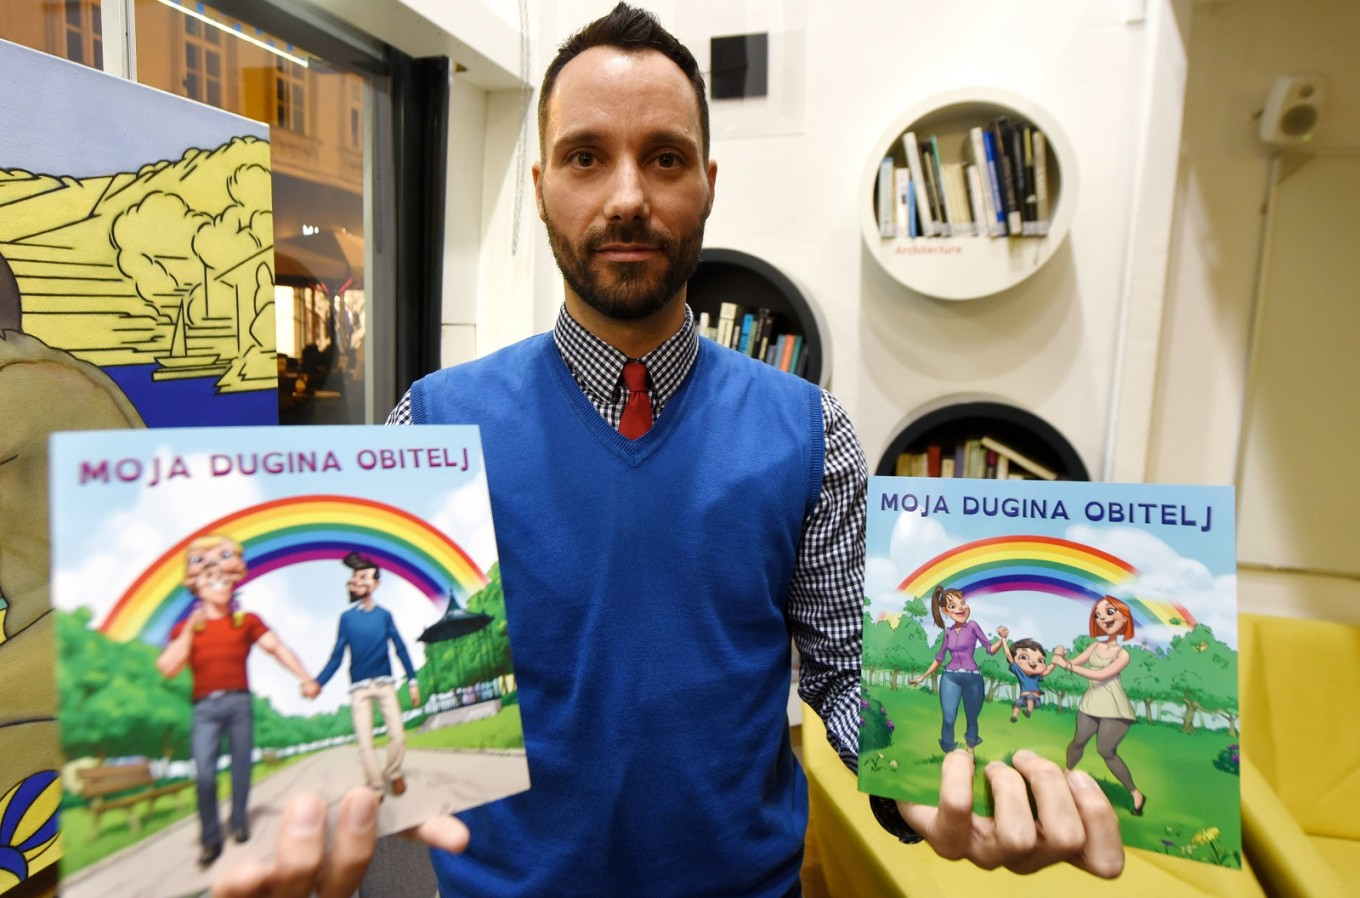 Rewriting norms in Croatia with children's same-sex family book